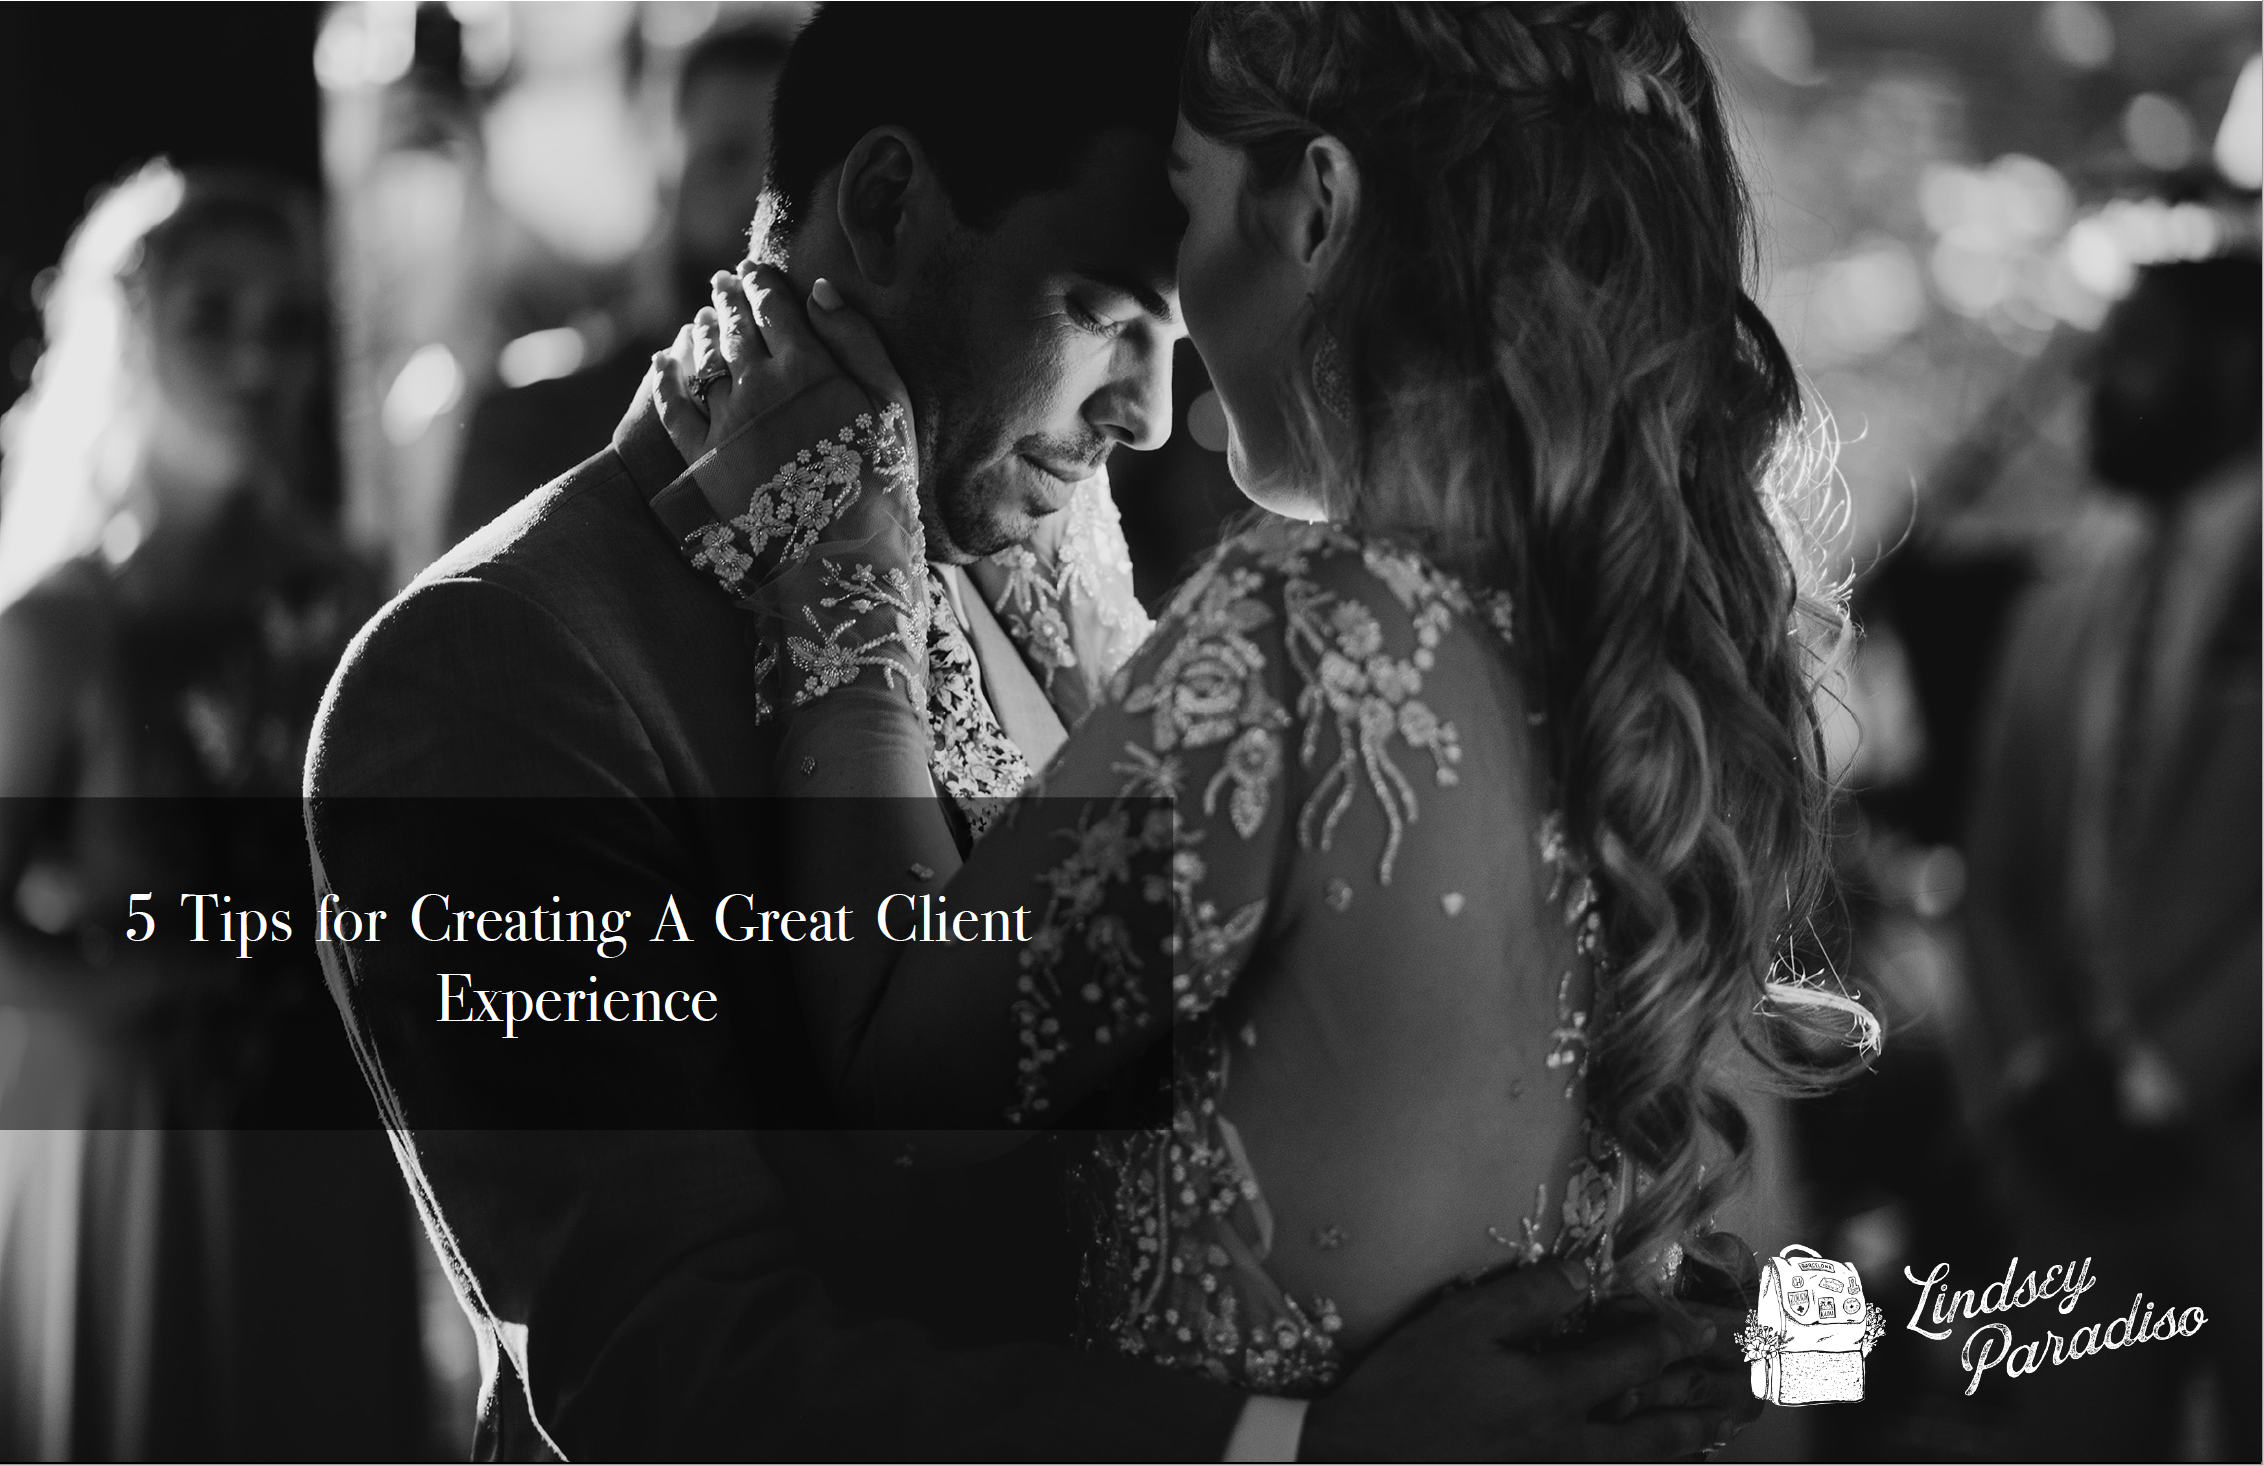 """Lindsey Paradiso - Based on years of experience of working with couples, Lindsey has put together these tips, so that your clients won't ever end up disappointed! Download now the free PDF with """"5Tips for Creating A Great Client Experience""""."""